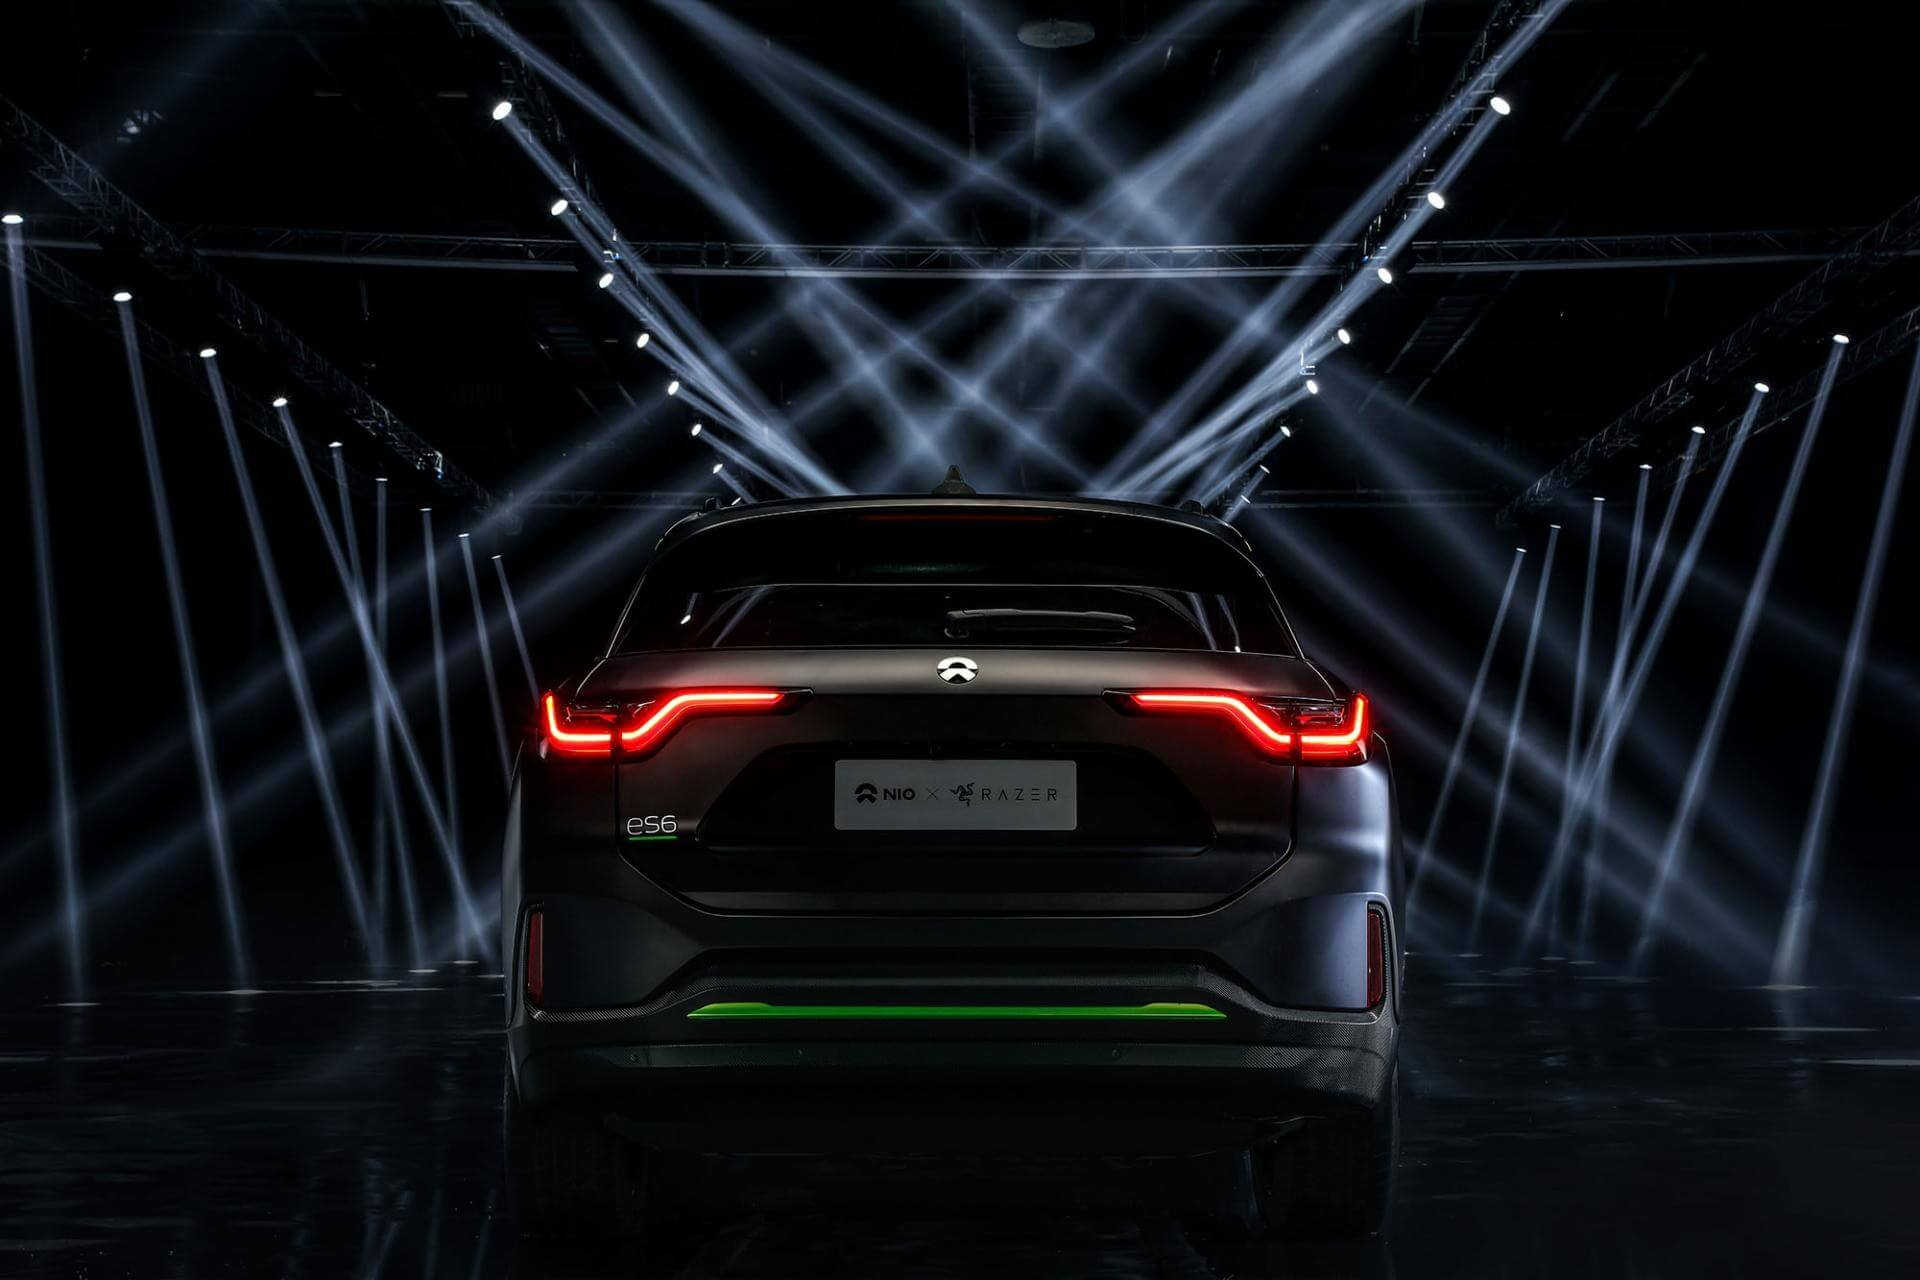 Razer's newest accessory is an electric SUV - TechSpot